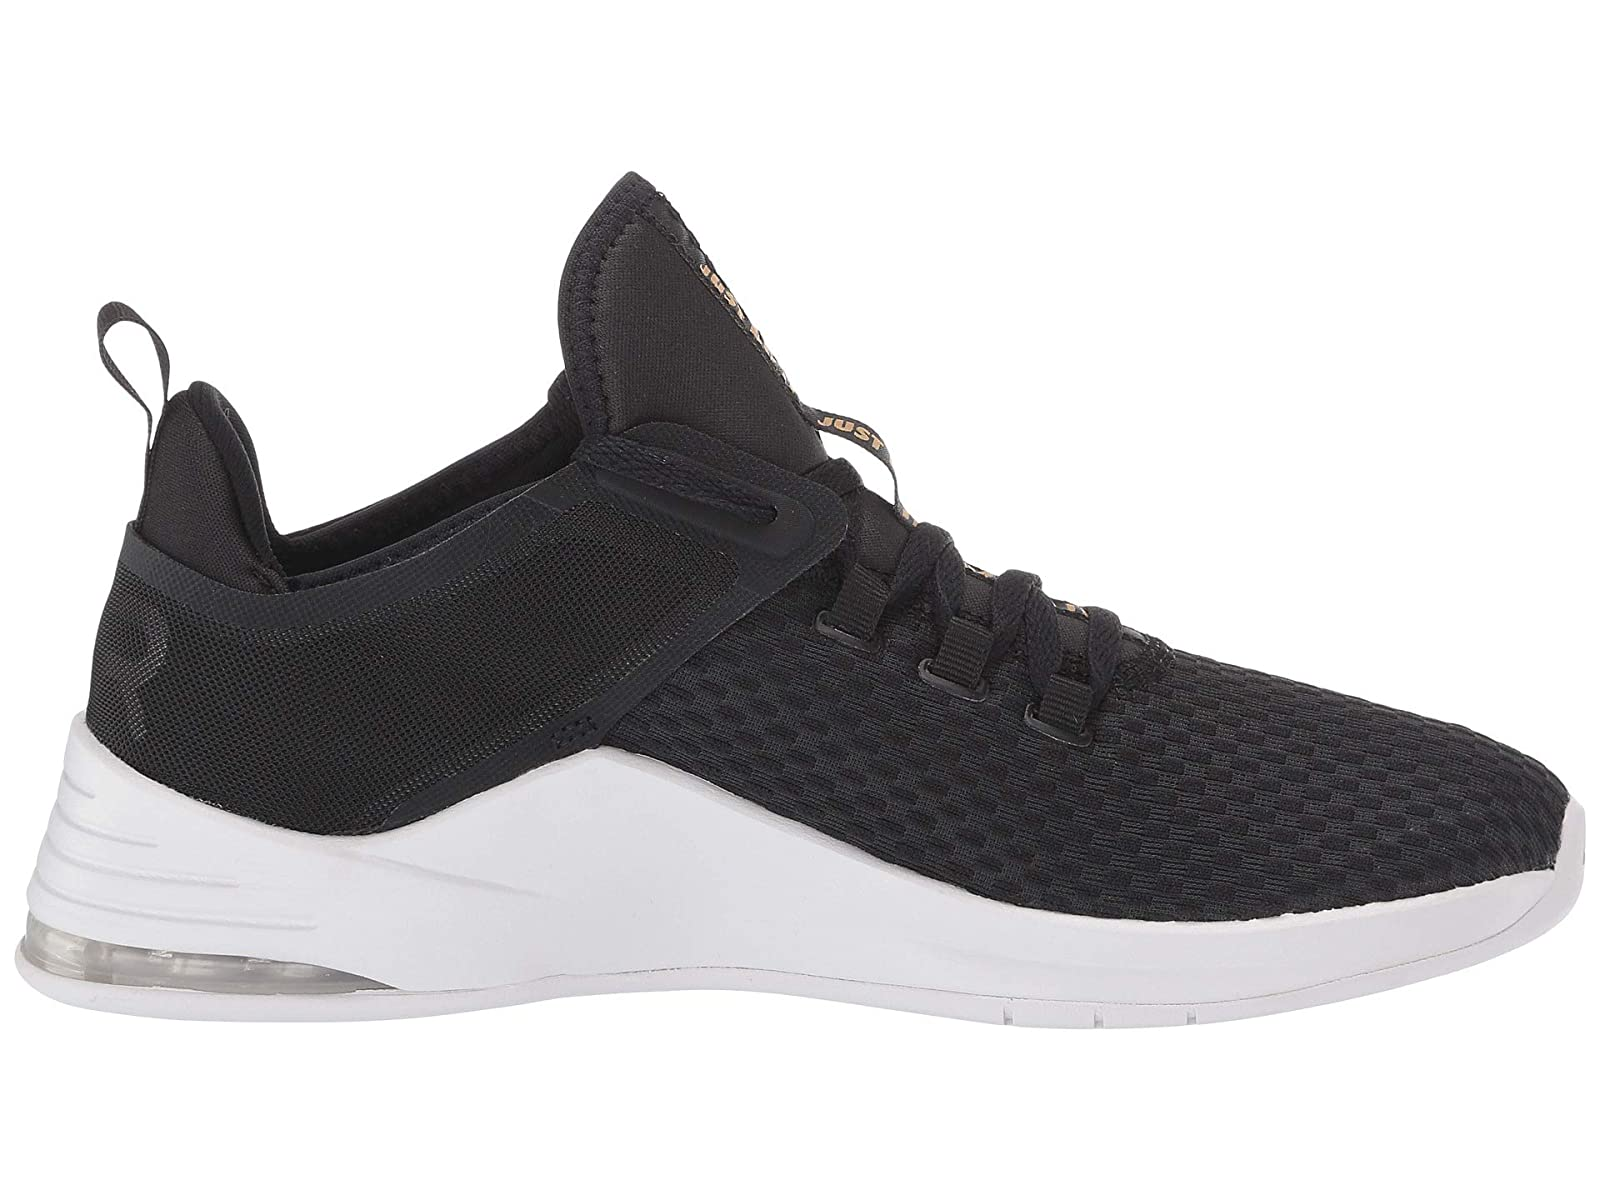 Details about Women\u0027s Sneakers \u0026 Athletic Shoes Nike Air Max Bella TR 2